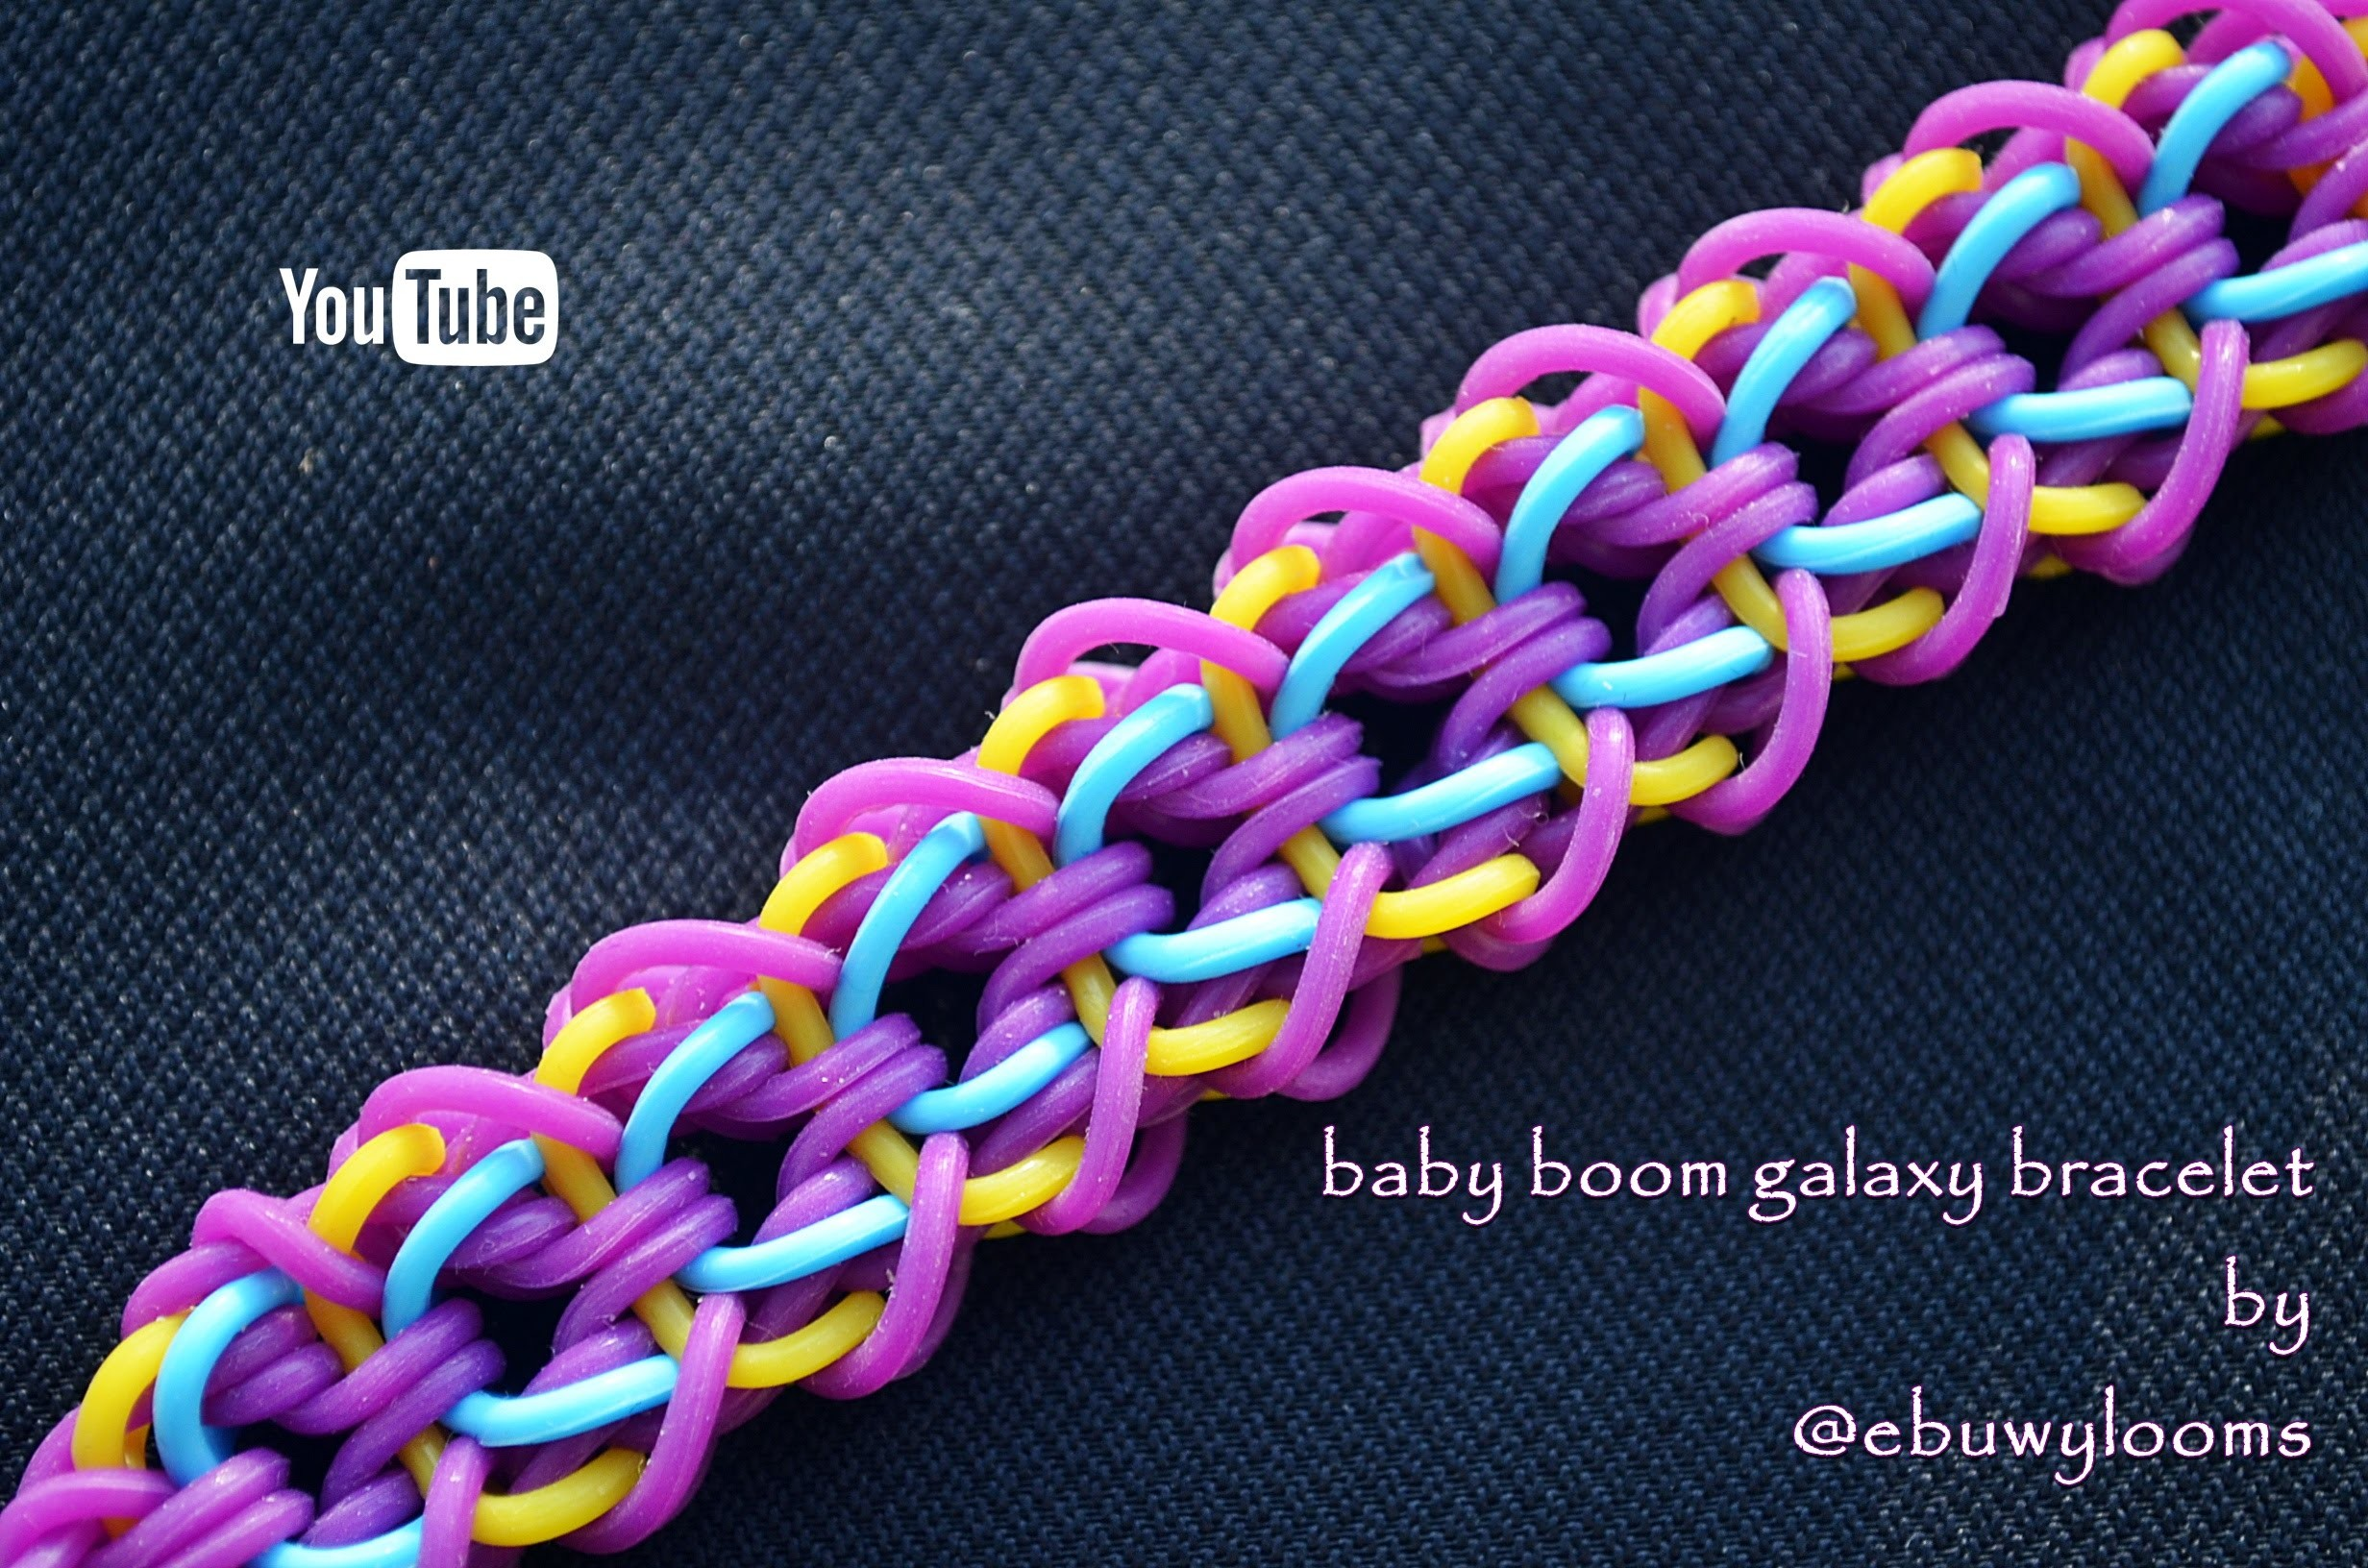 BABY BOOM GALAXY BRACELET HOOK ONLY DESIGN TUTORIAL